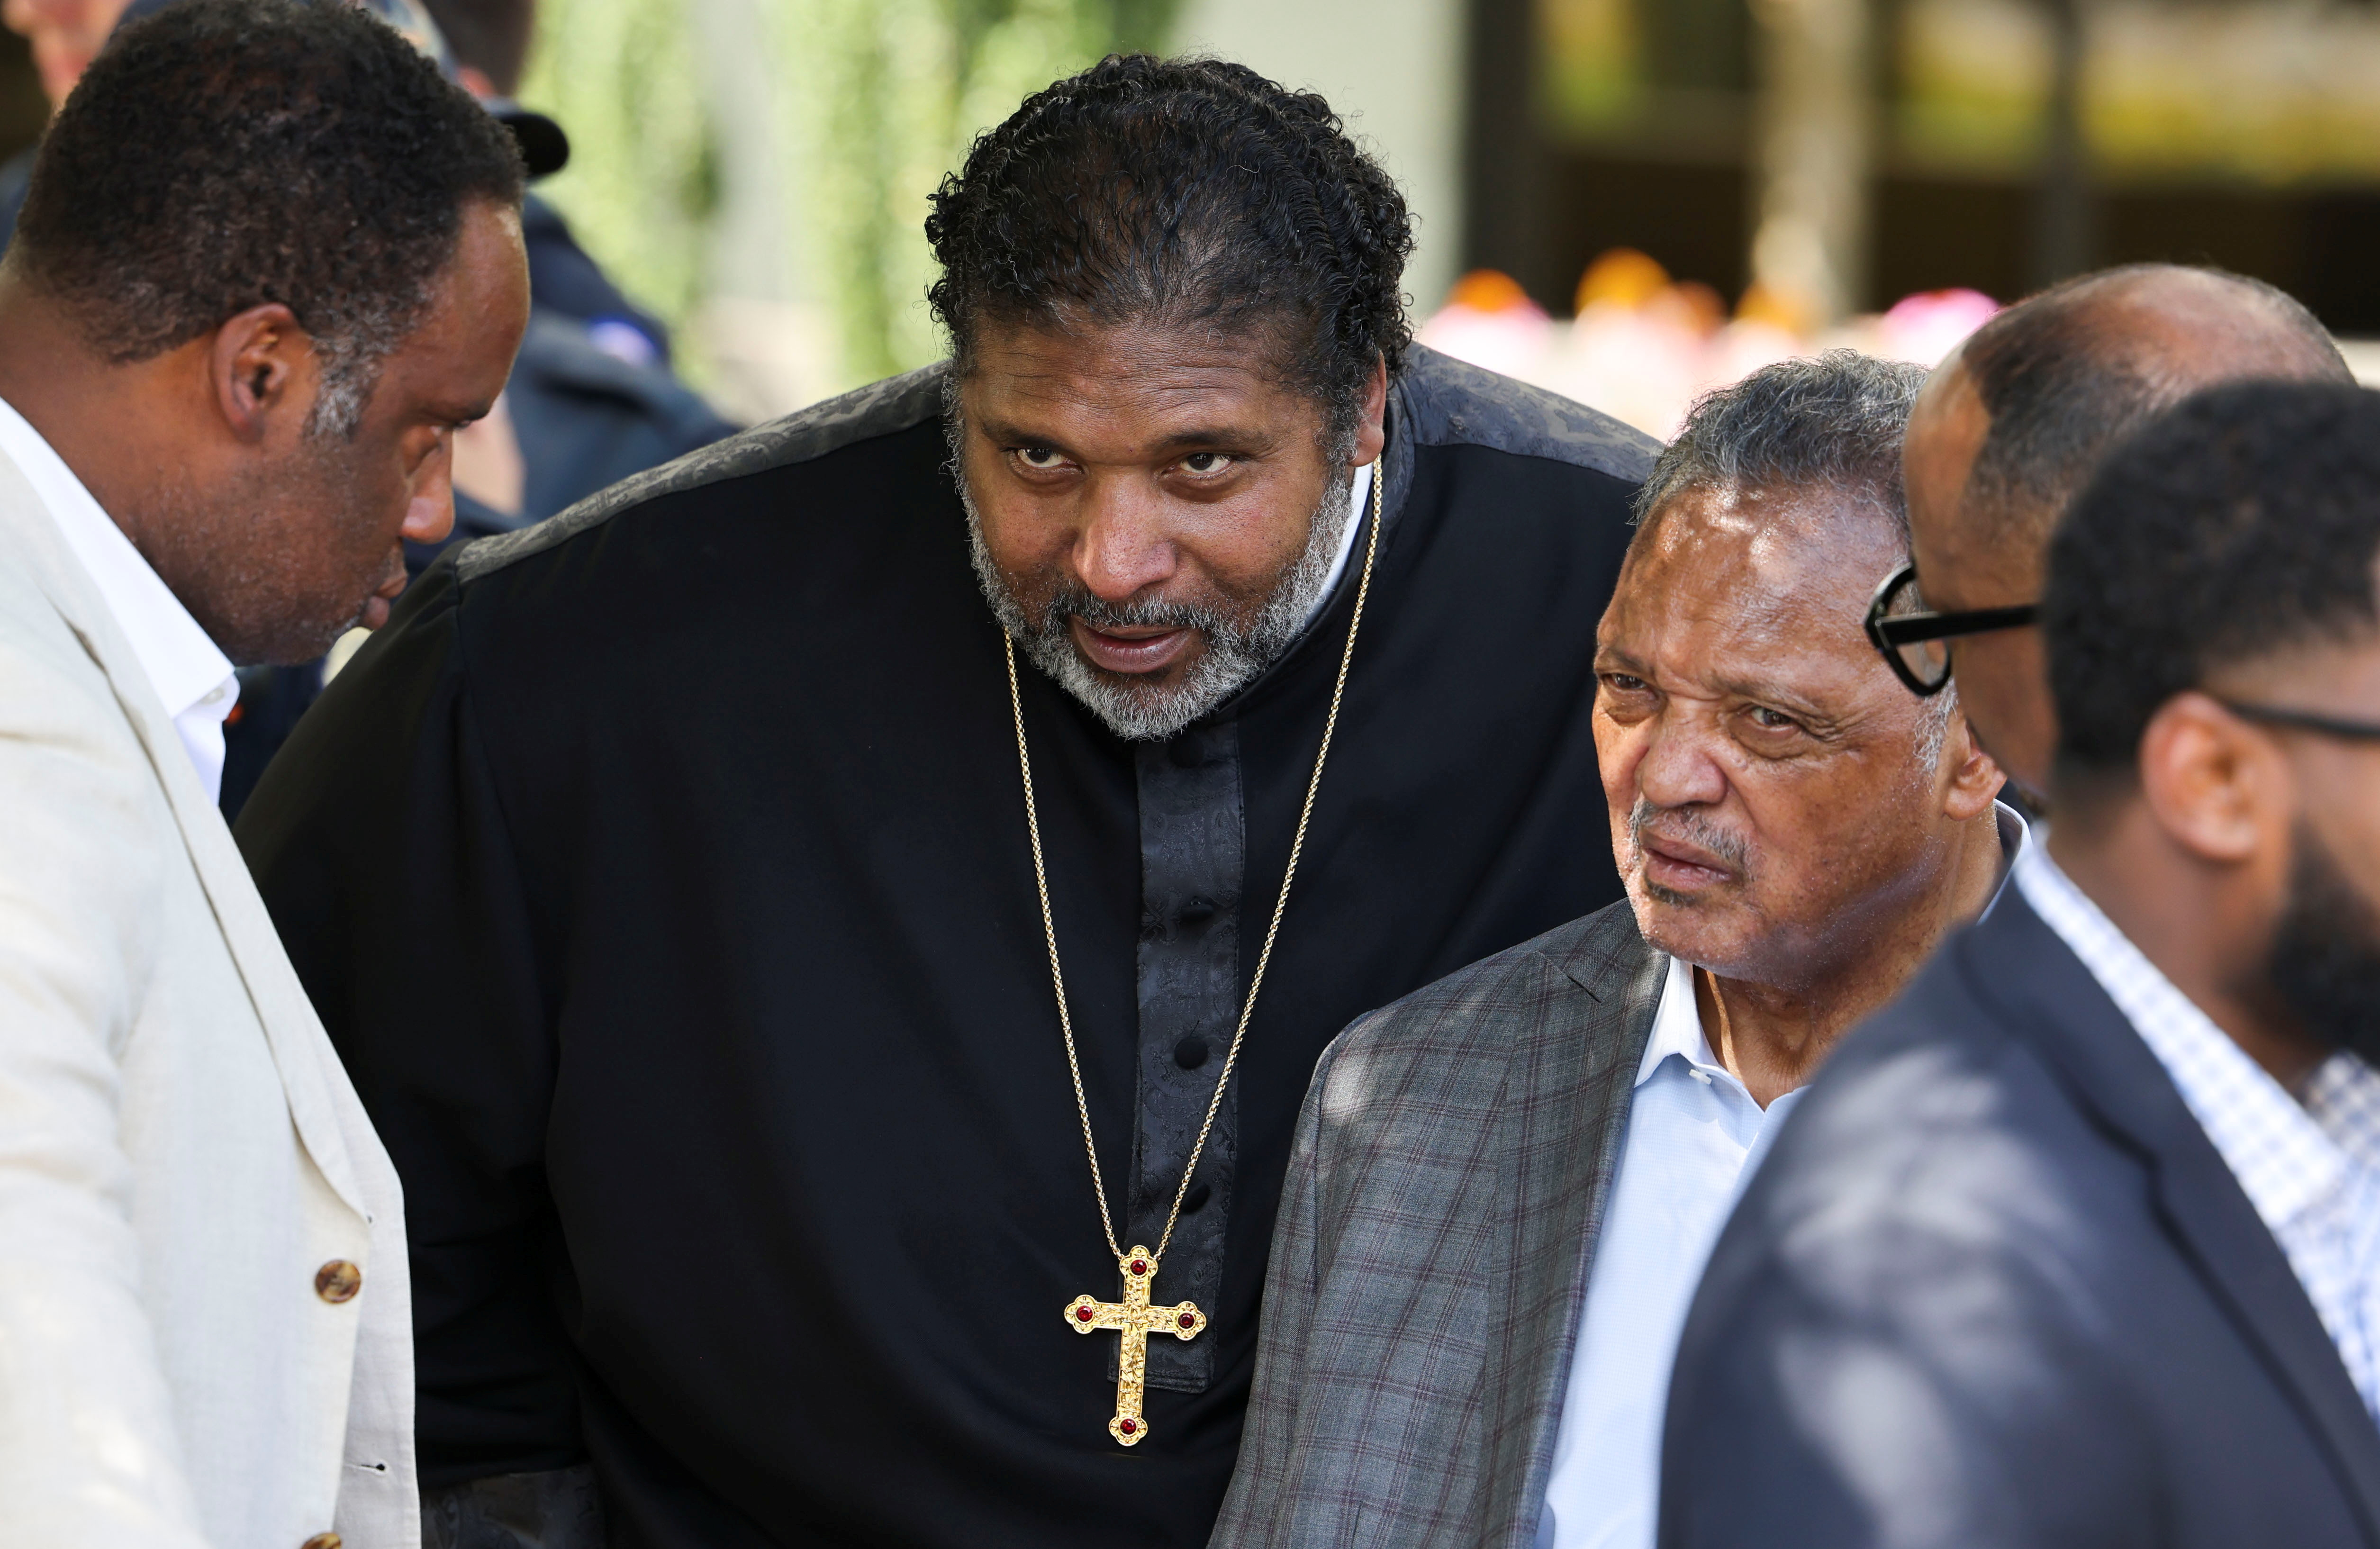 Bishop William Barber, co-chair of the